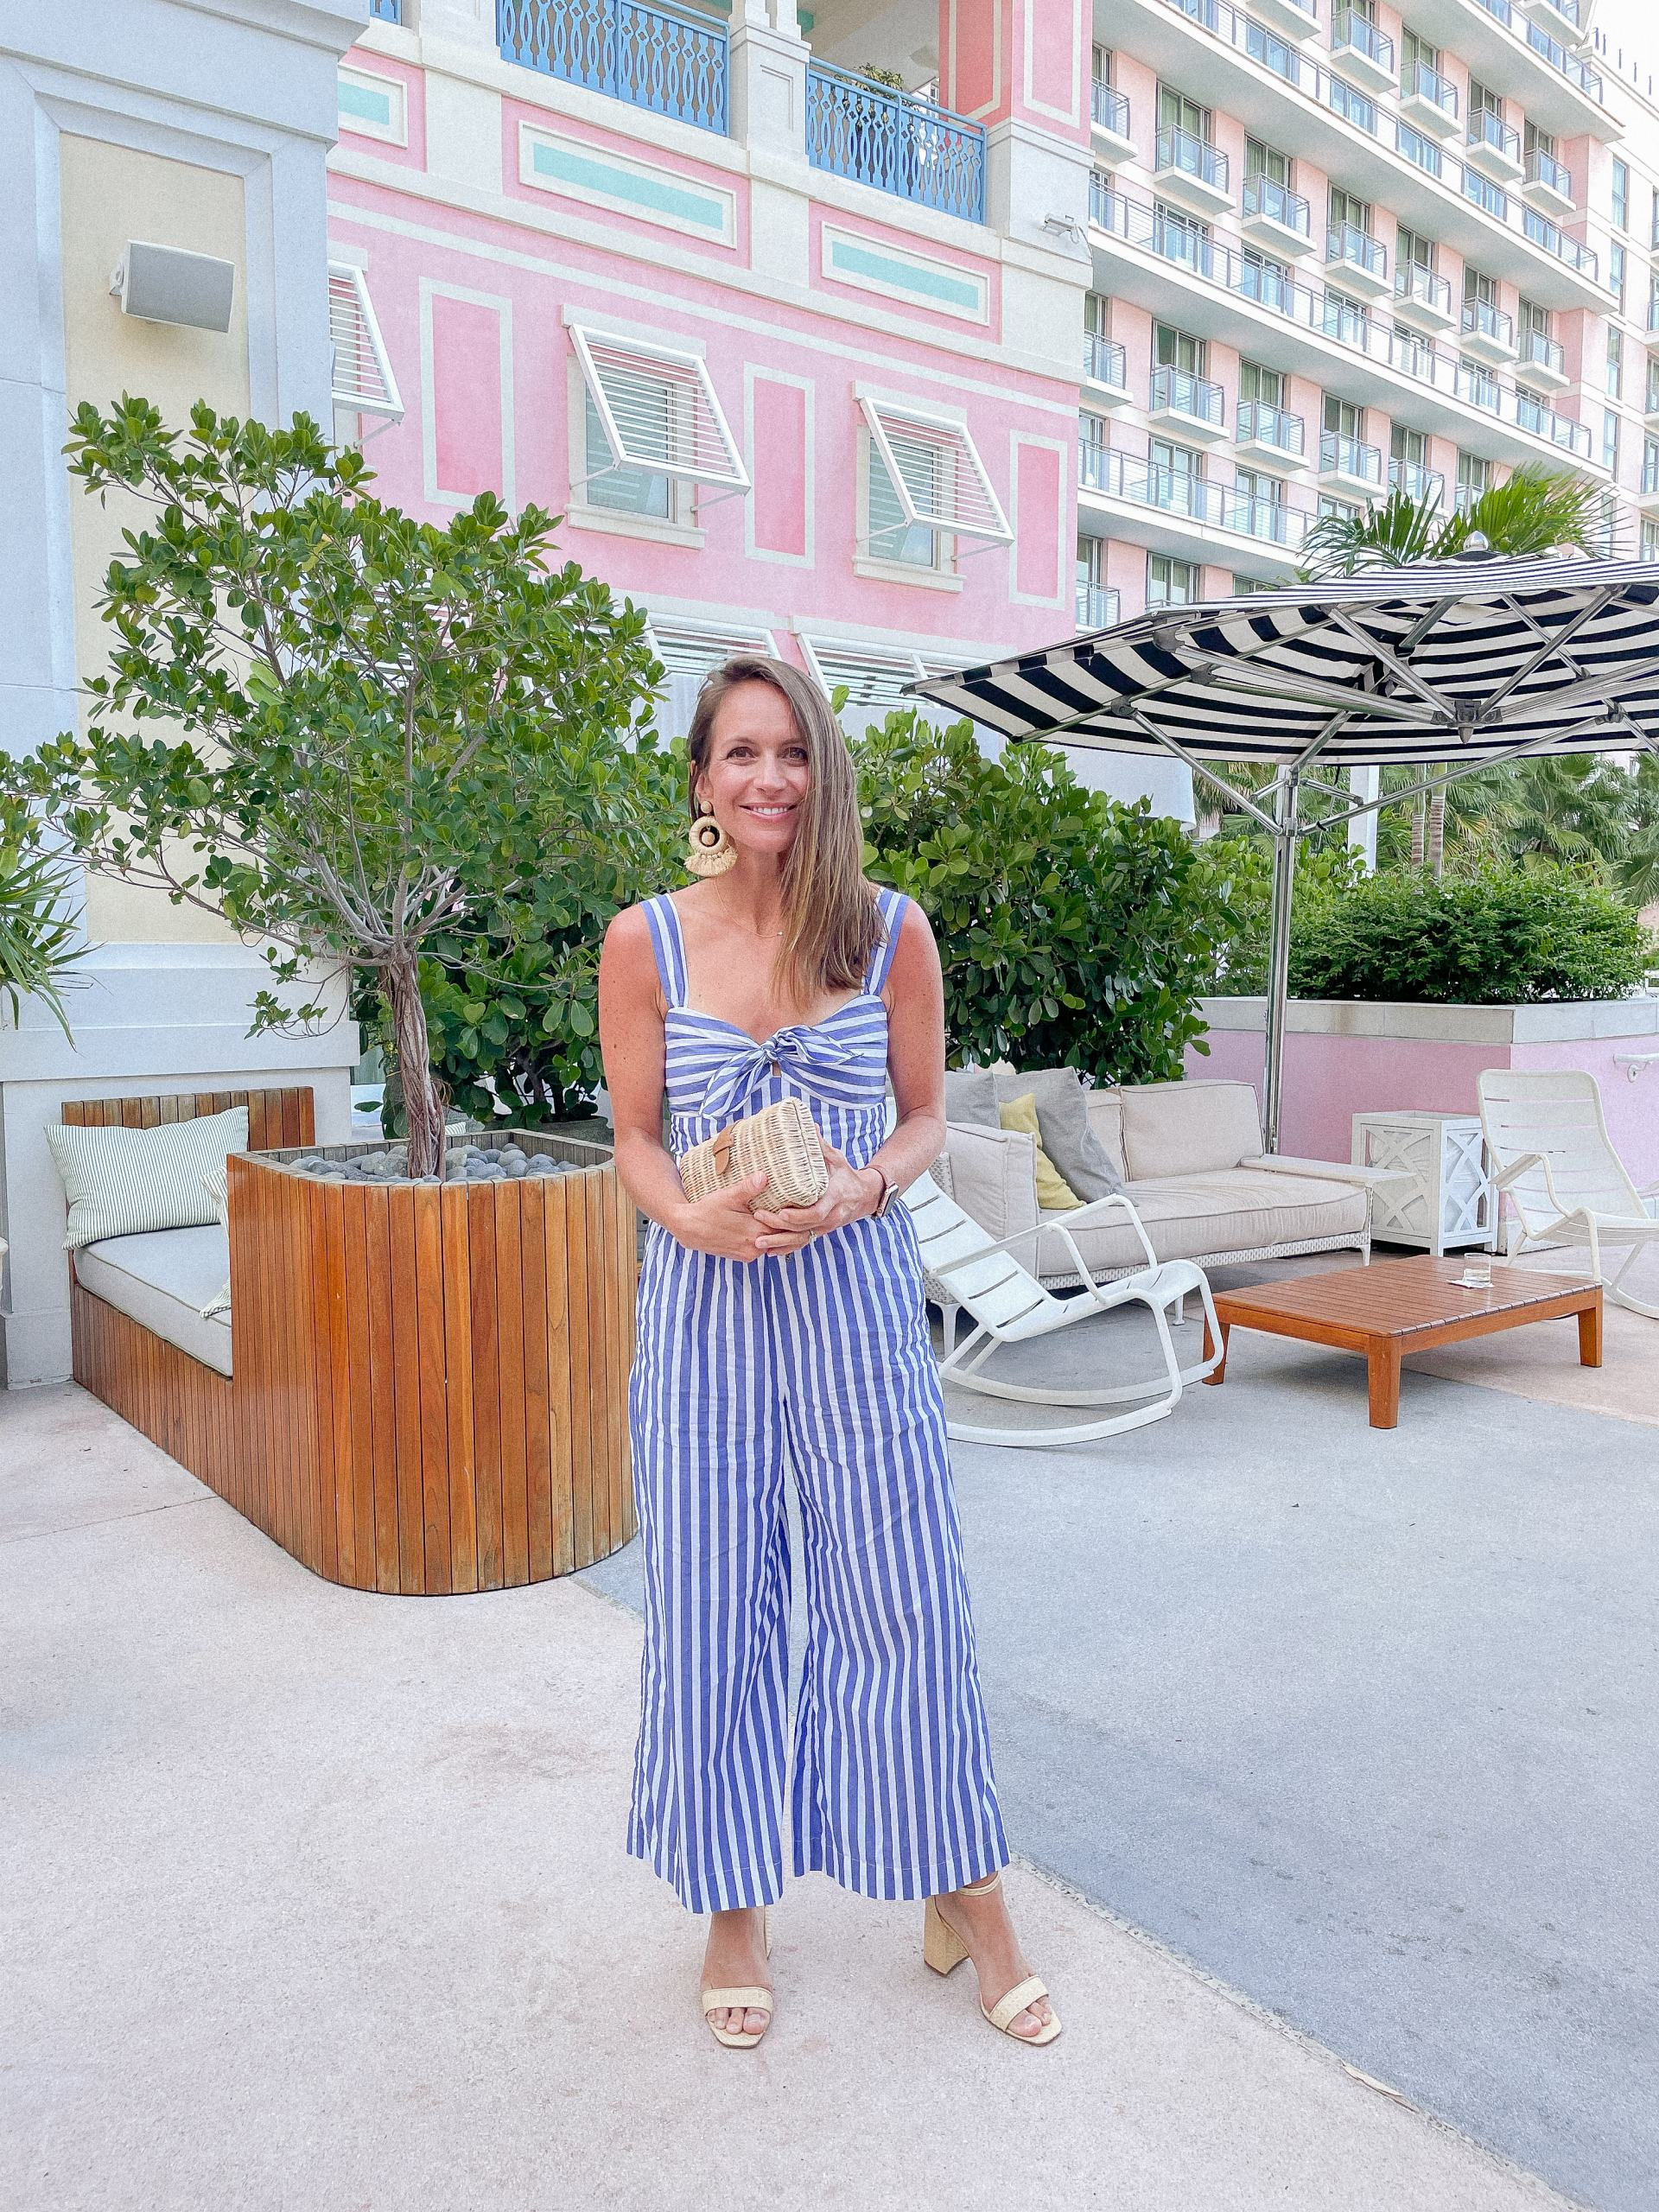 classic style - resort wear - striped 2 piece outfit - j. crew awning striped wide leg pants and tie front crop top - j mclaughlin esme heels - baha mar resort